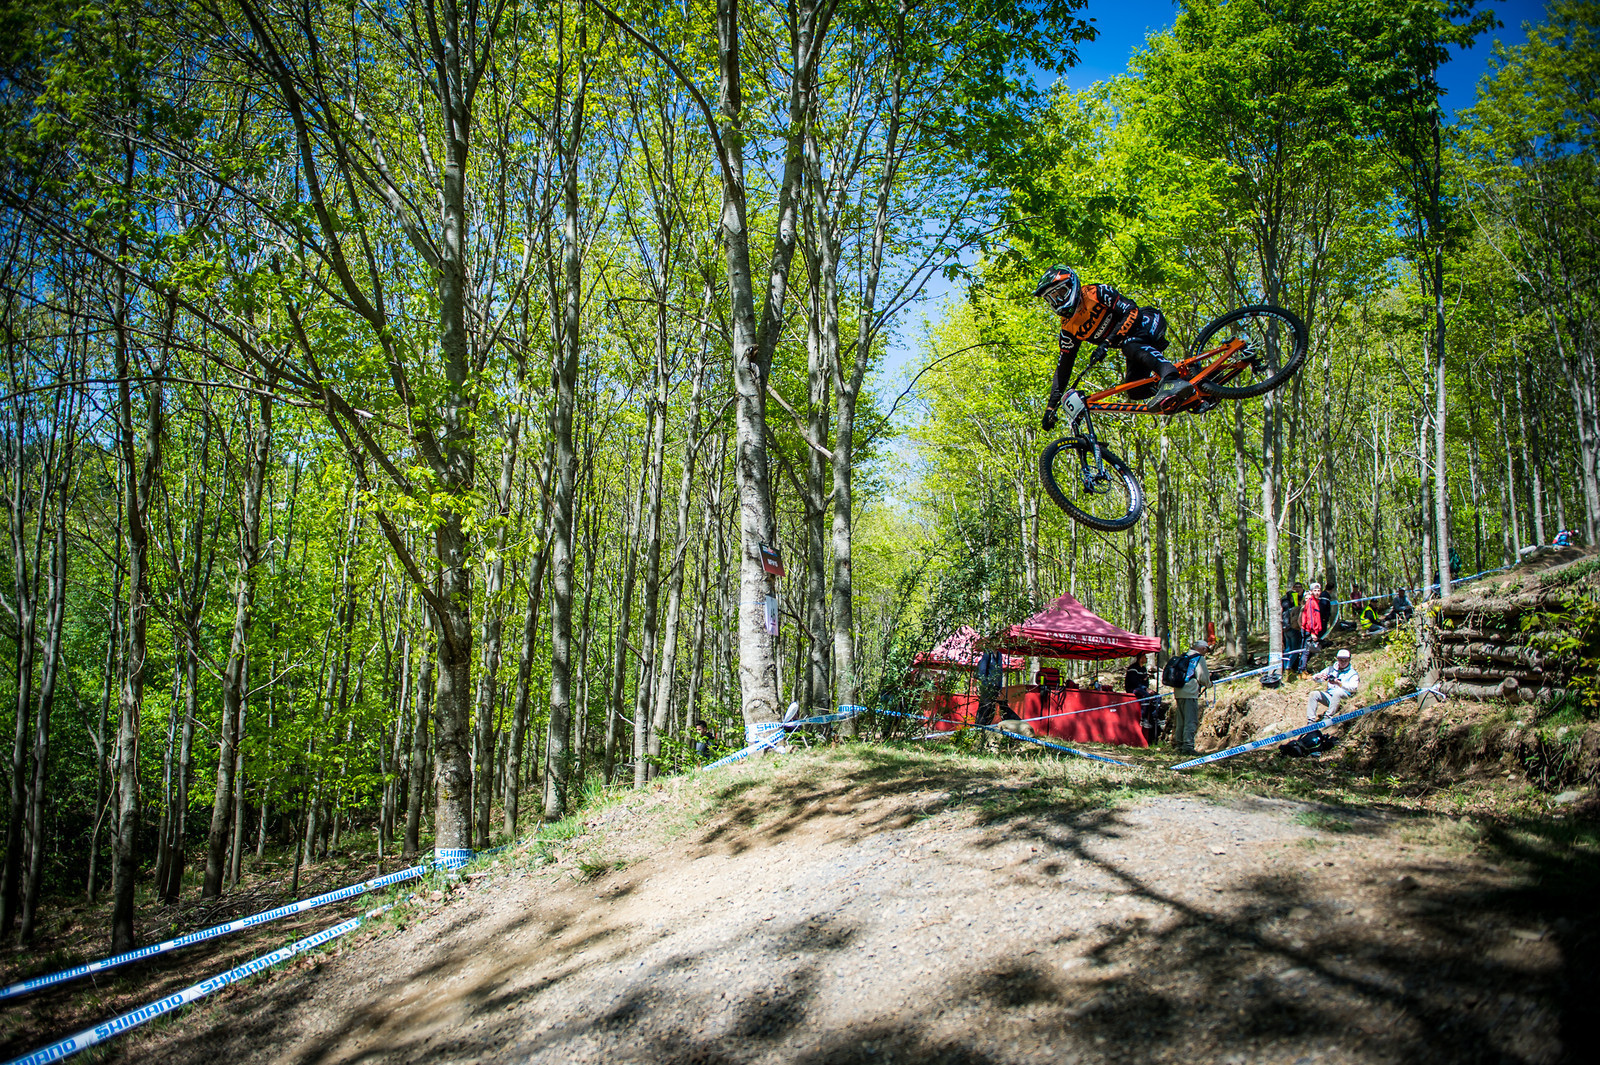 Fearon whipping it out in Lourdes.